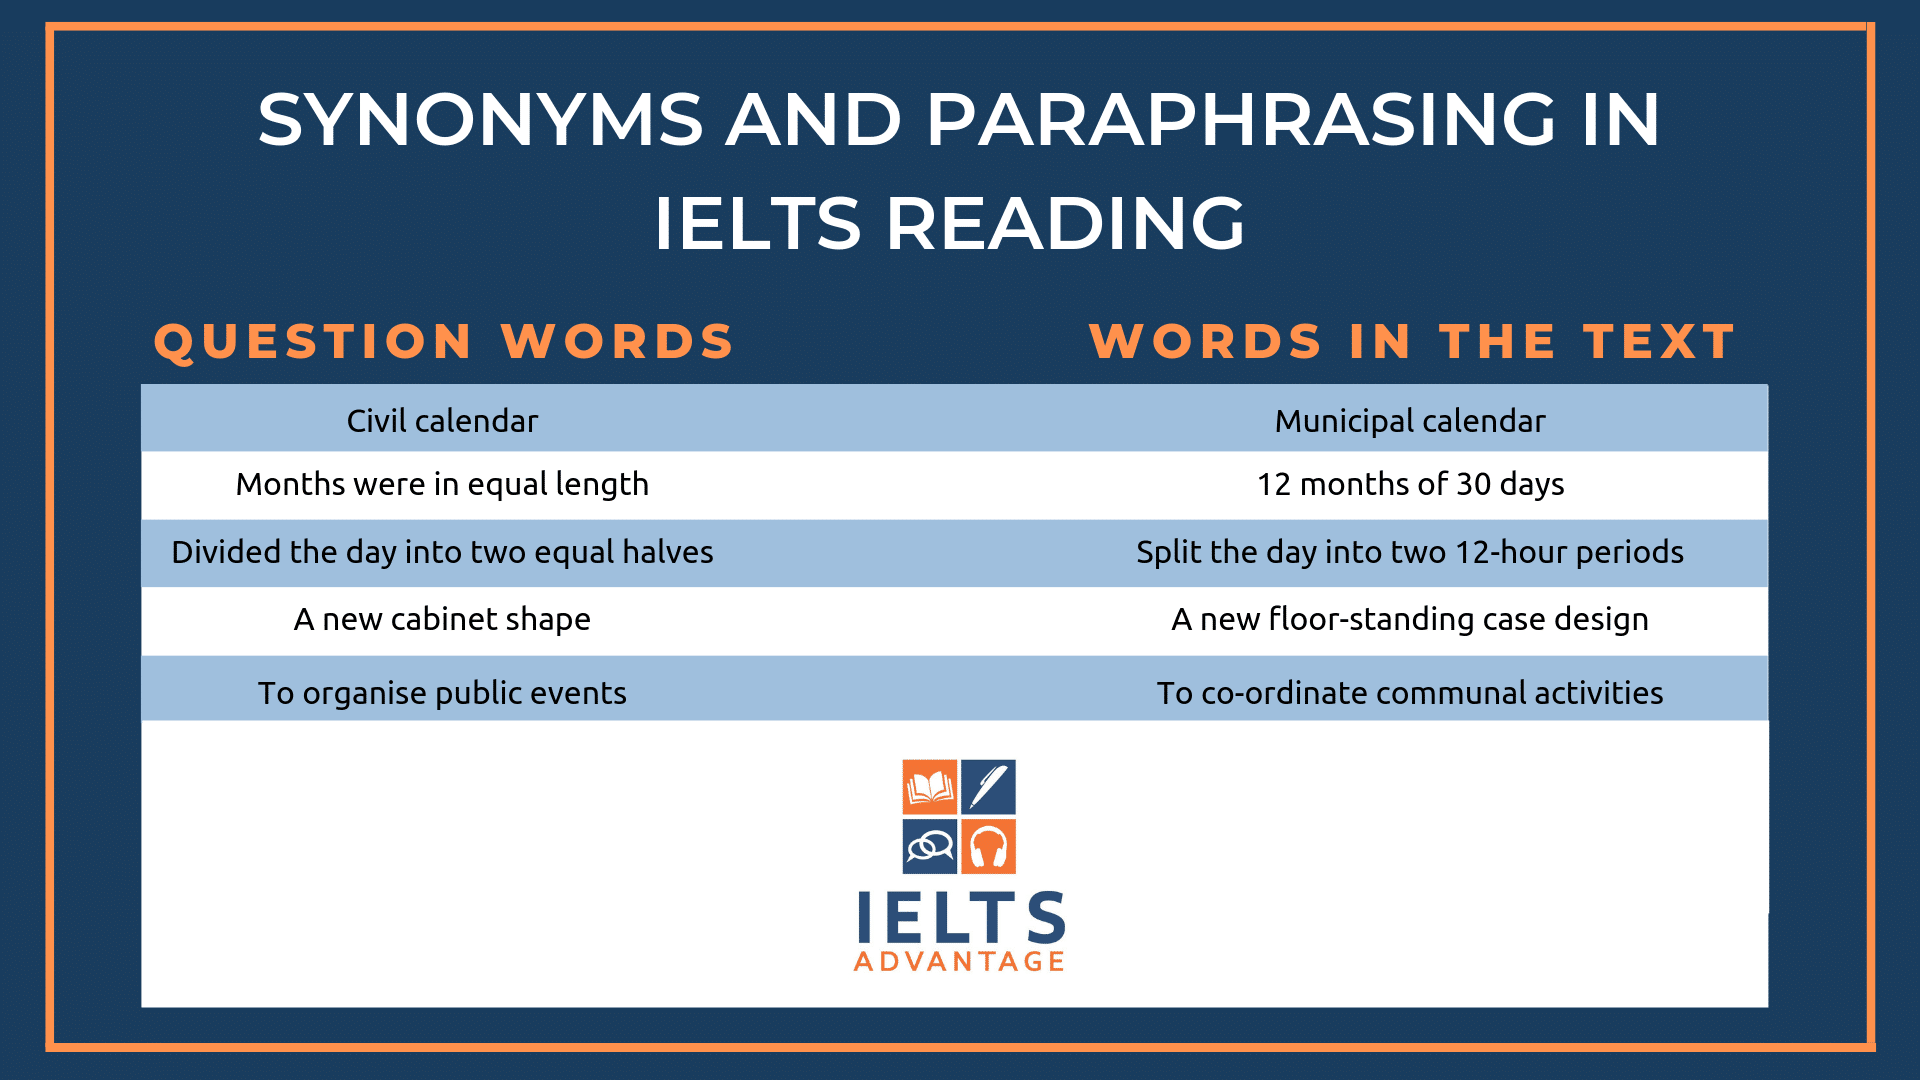 IELTS-synonyms - IELTS Vocabulary